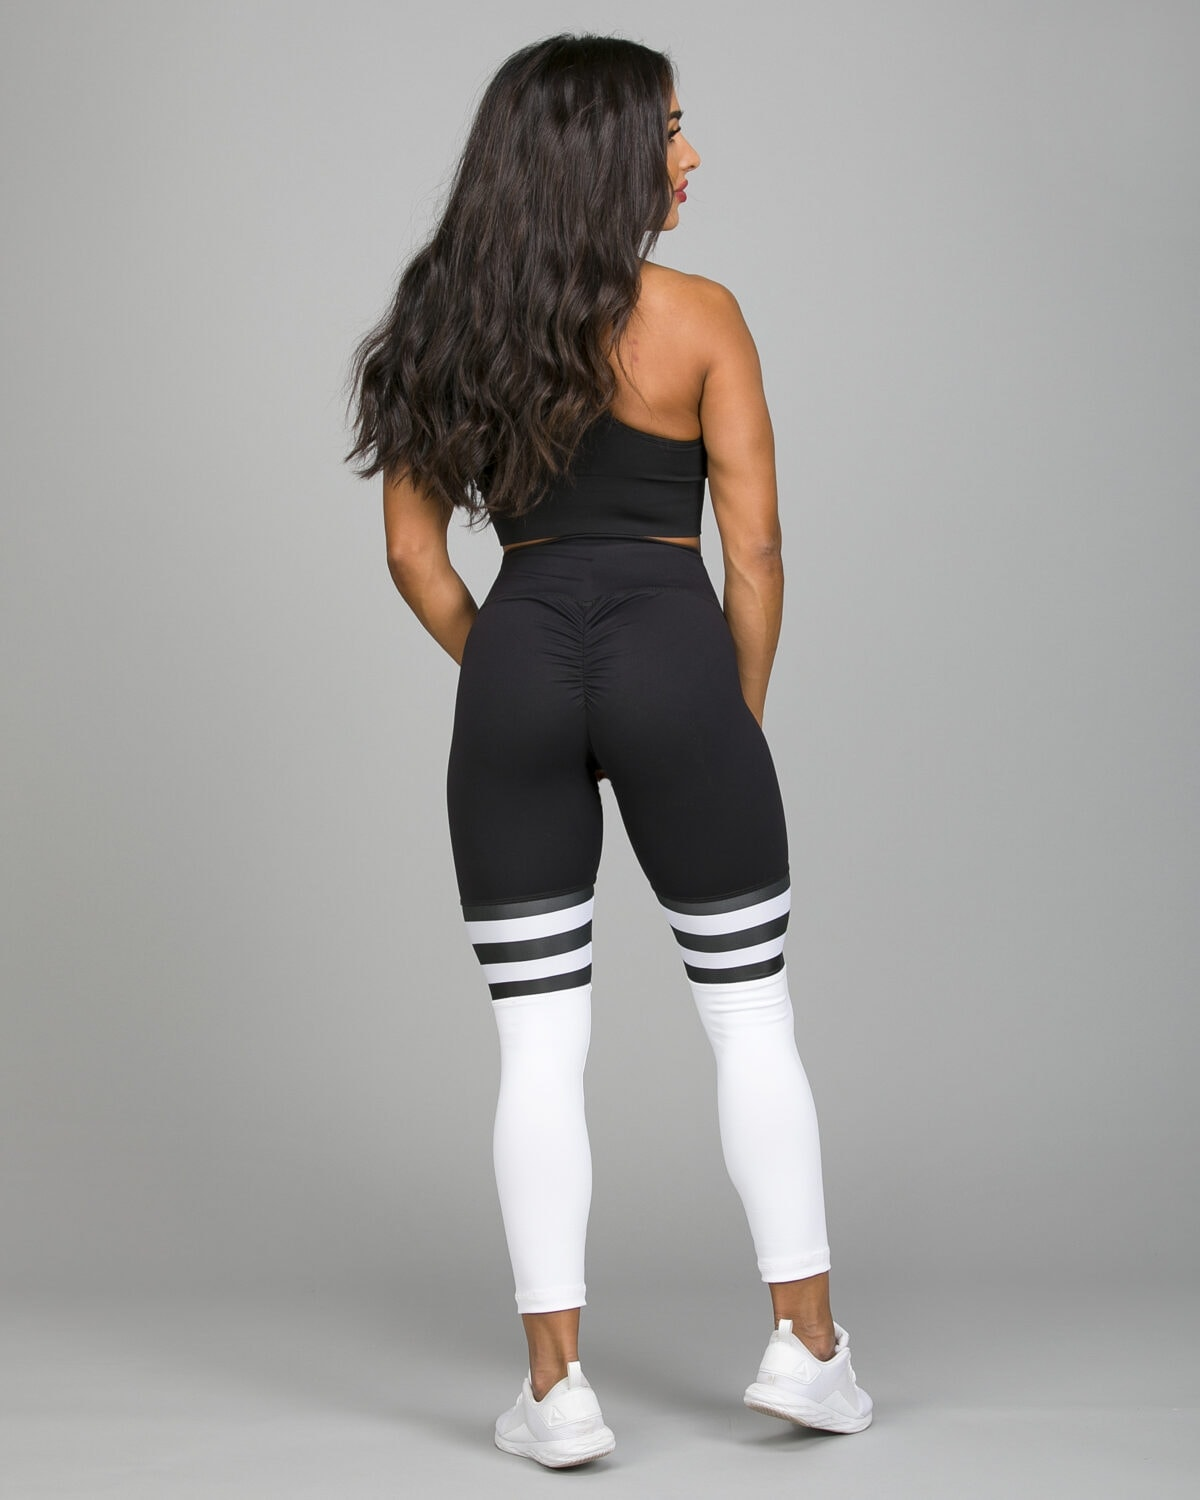 ABS2B-Fitness-High-Knee-Stripes-Black.White8_-1200×1500